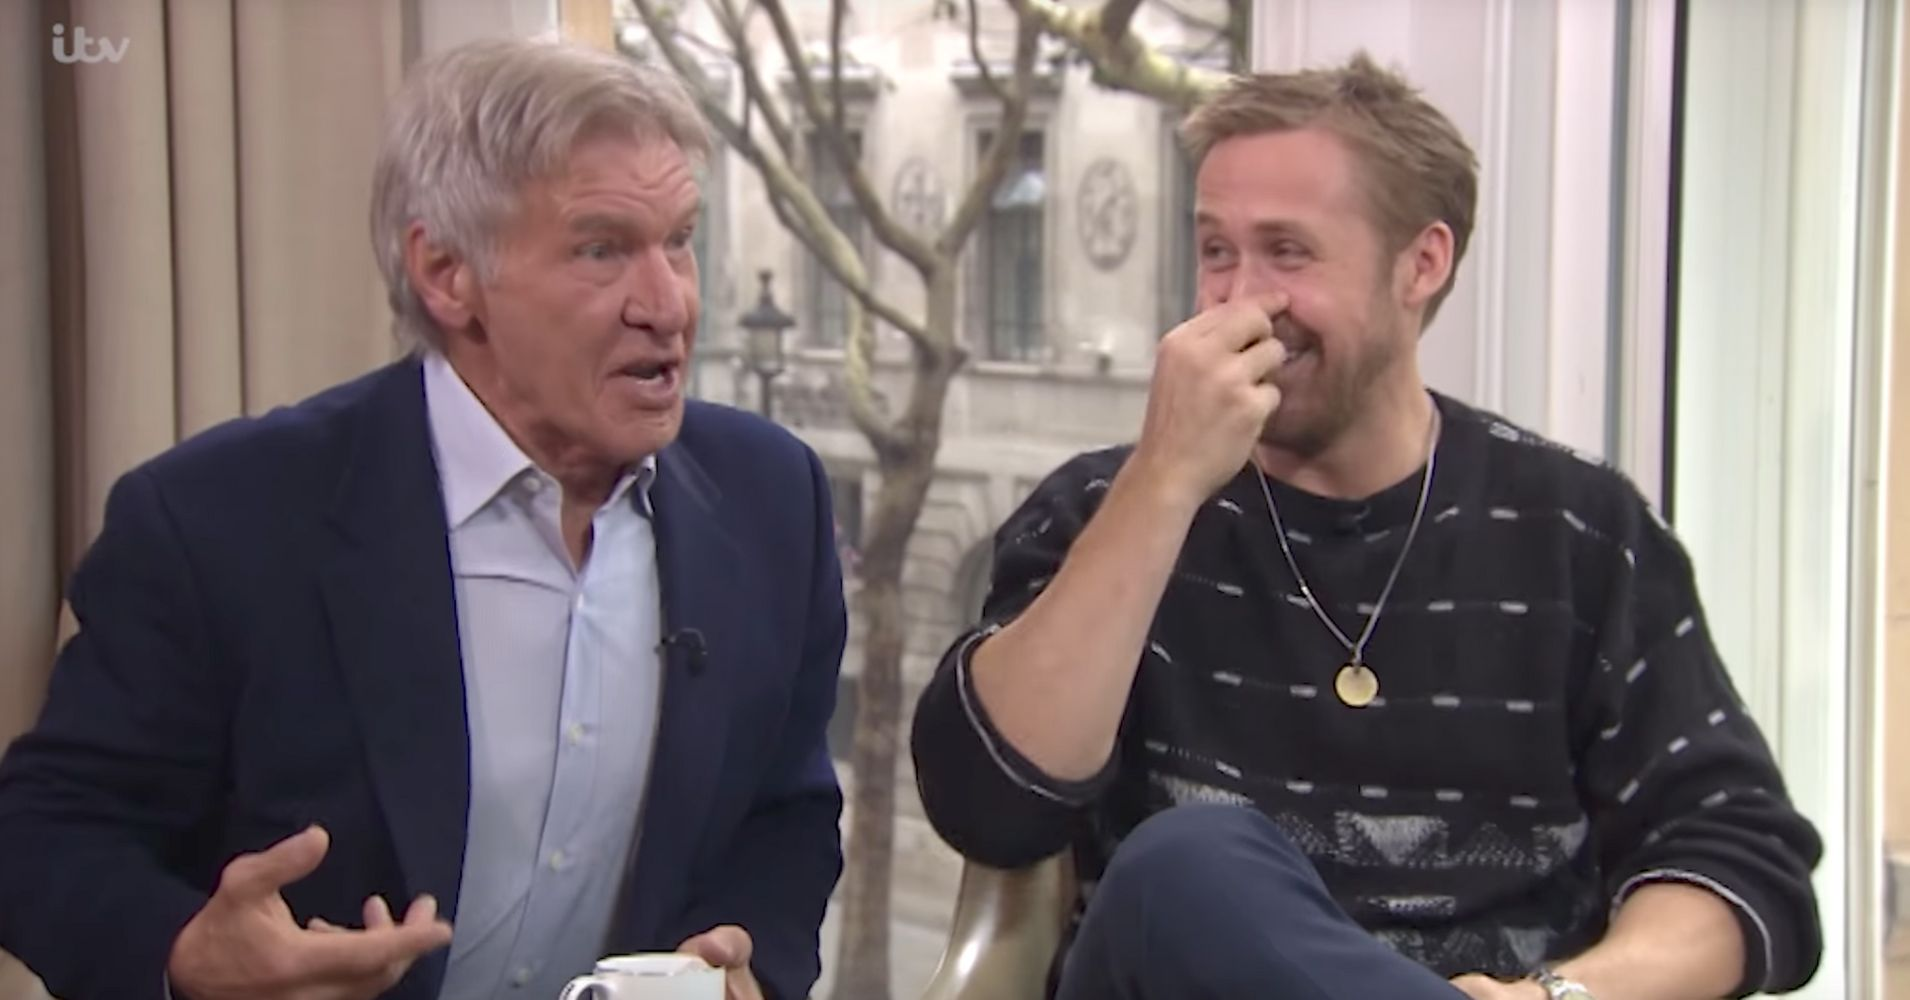 Harrison Ford And Ryan Gosling 'Blade Runner' Interview Goes Off The Rails